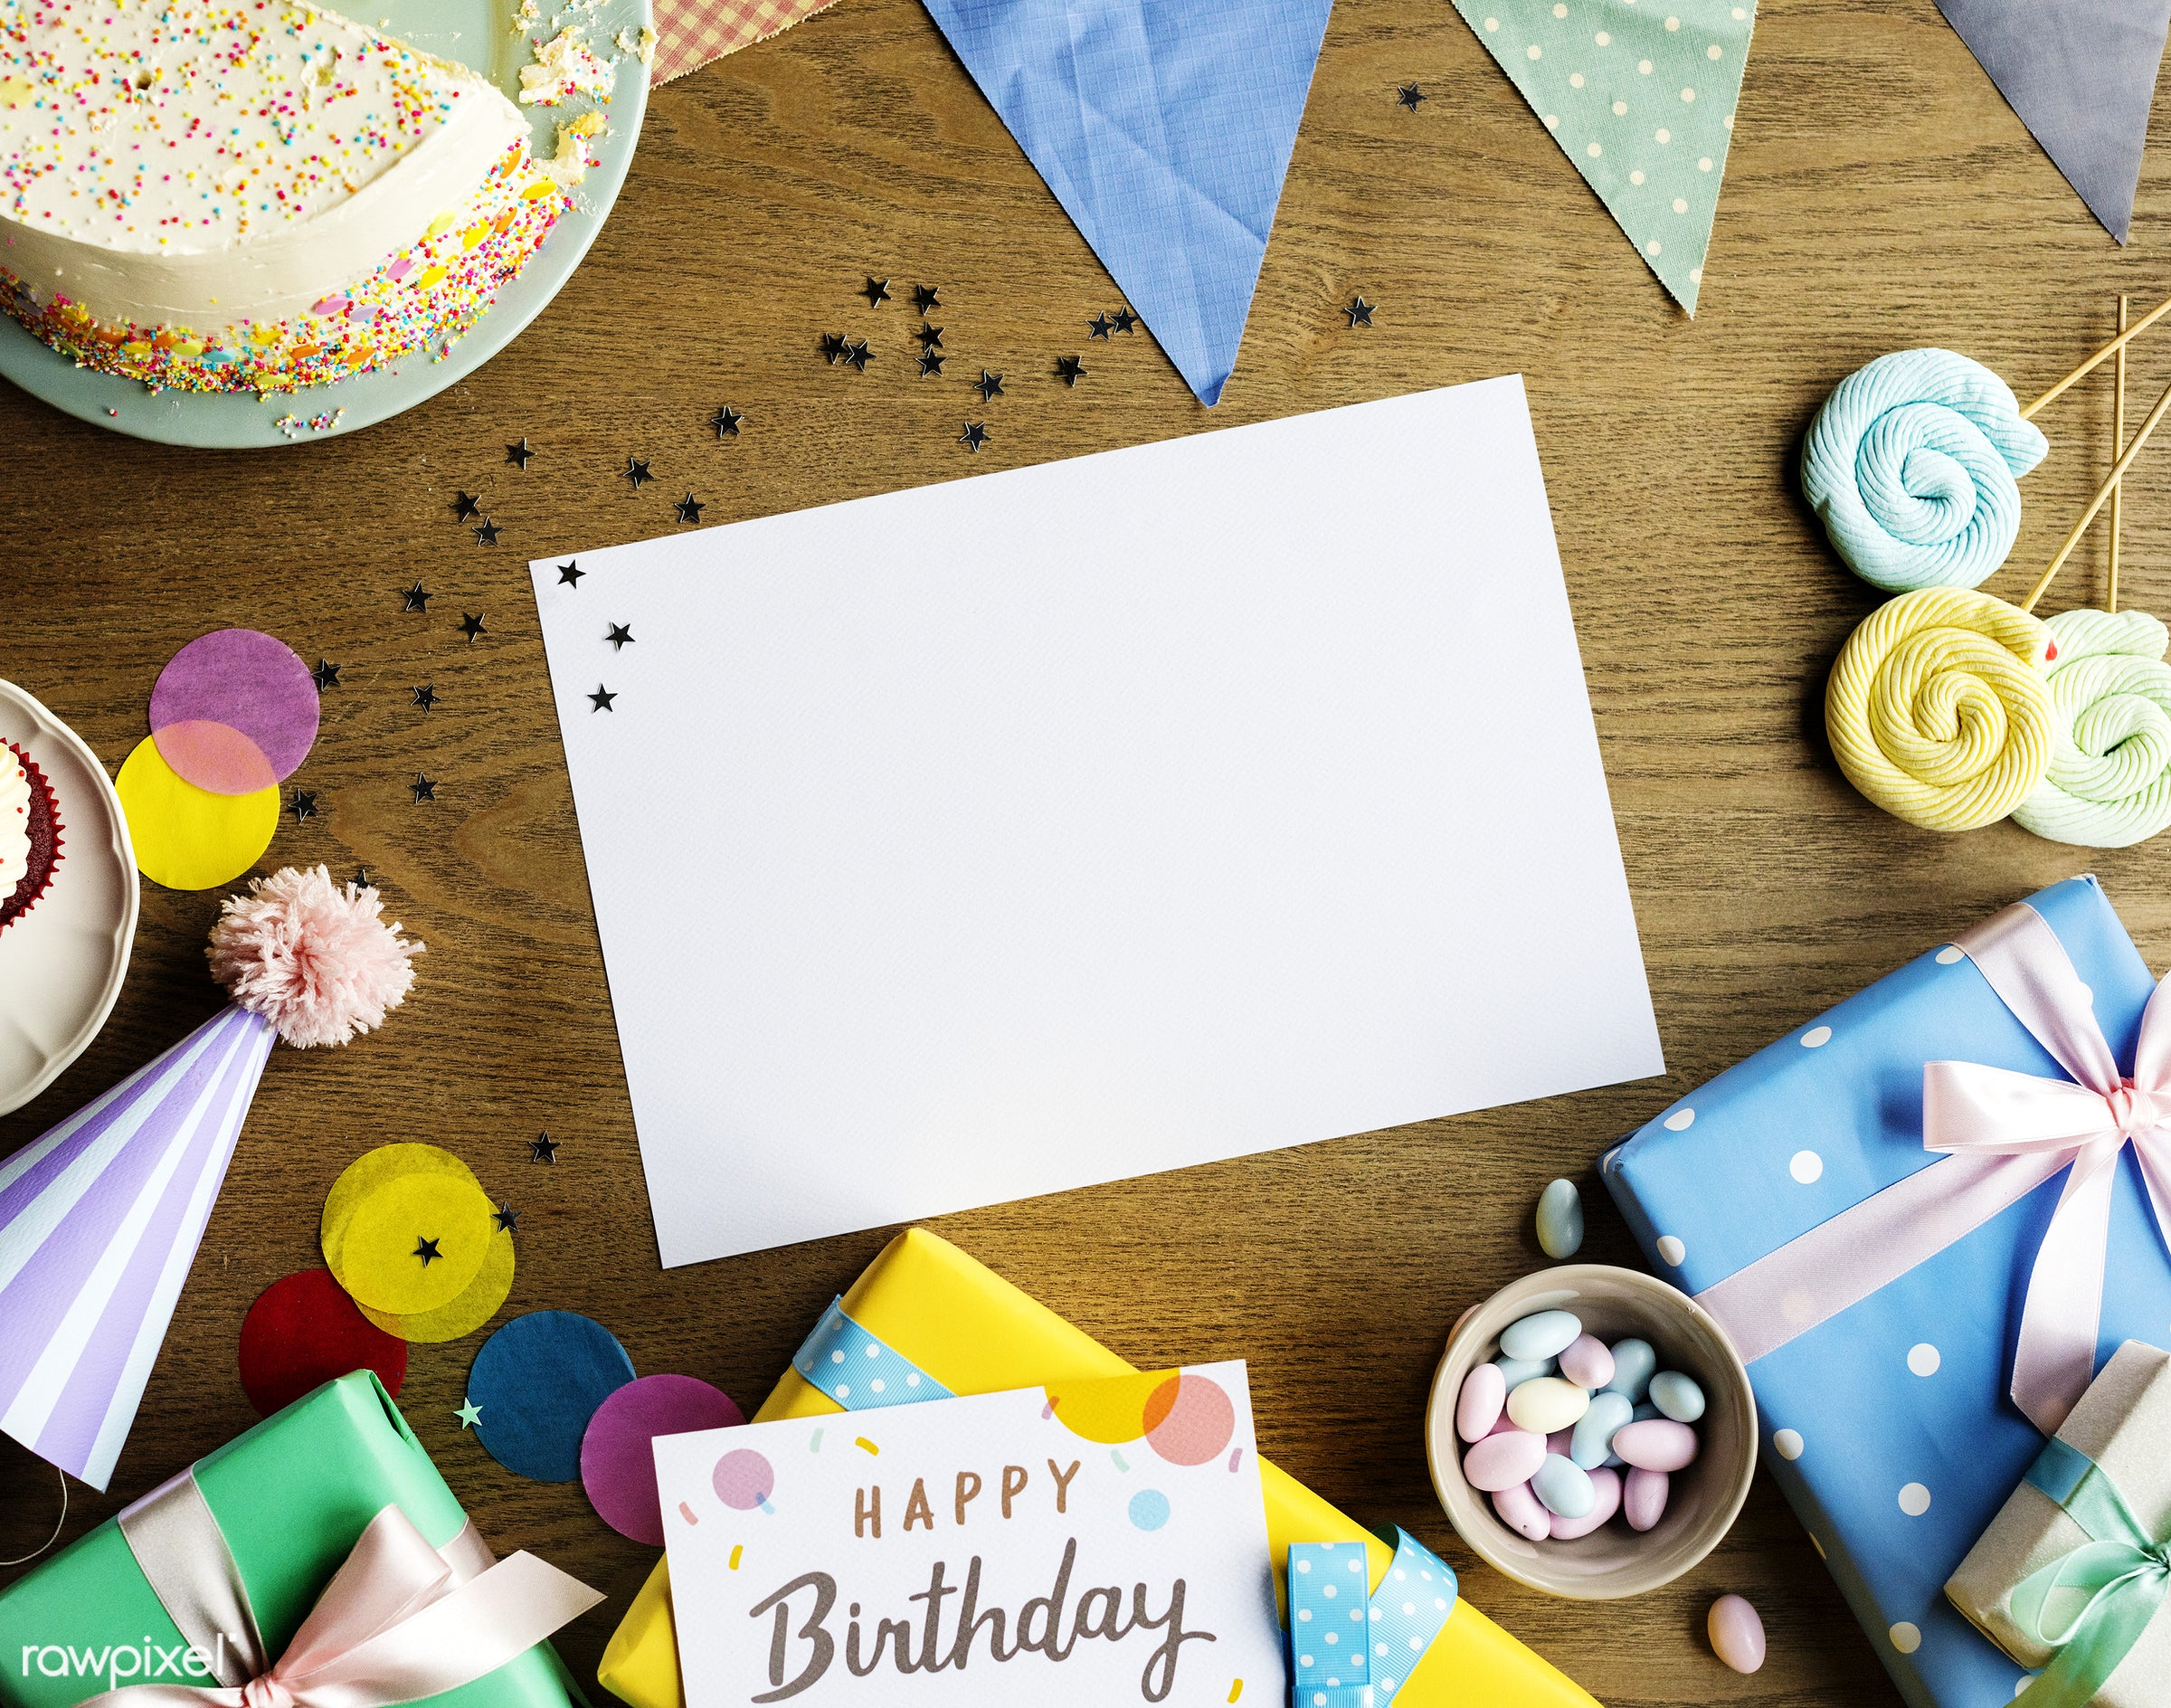 birthday, nobody, copy space, gift, relax, occasion, show, party, hat, bakery, happy, gather, gathering, wooden background,...